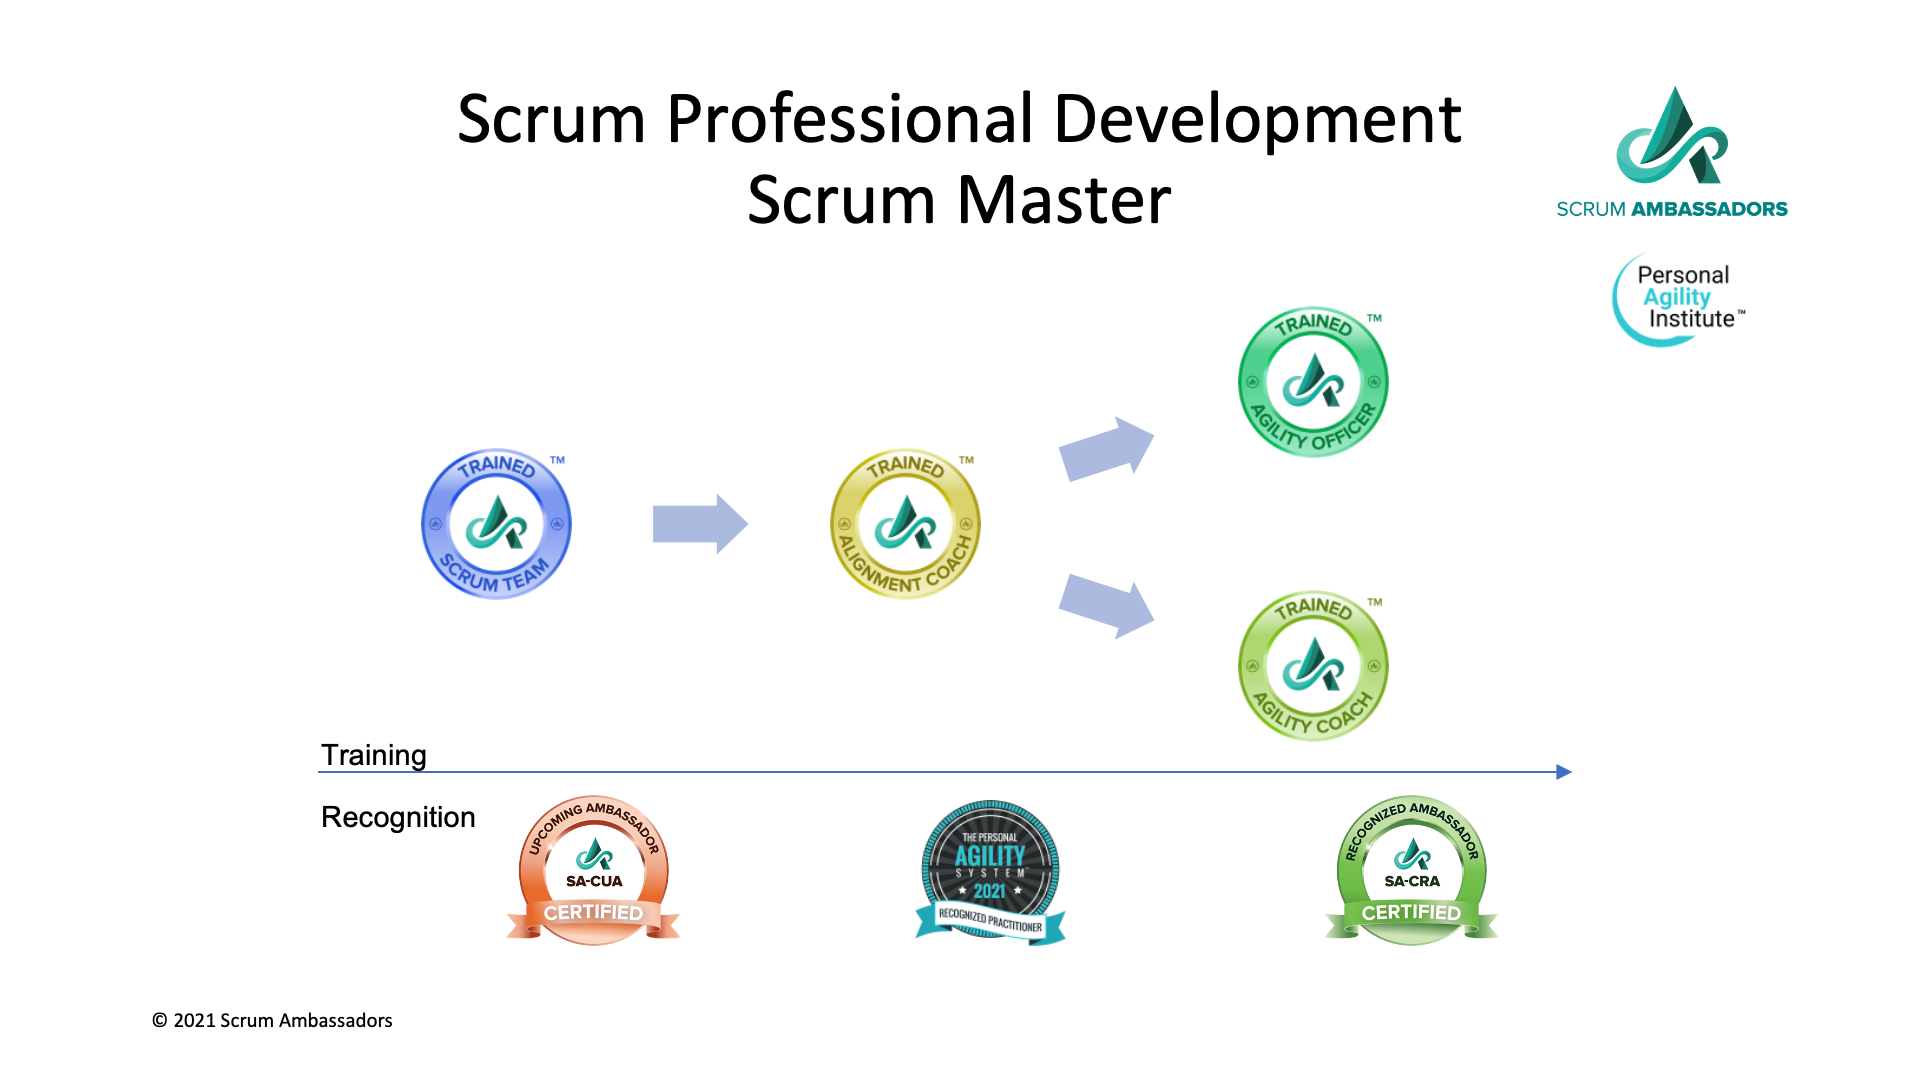 PARP Certification Program for Managers, Scrum Masters and Product Owners 211122A-PAS